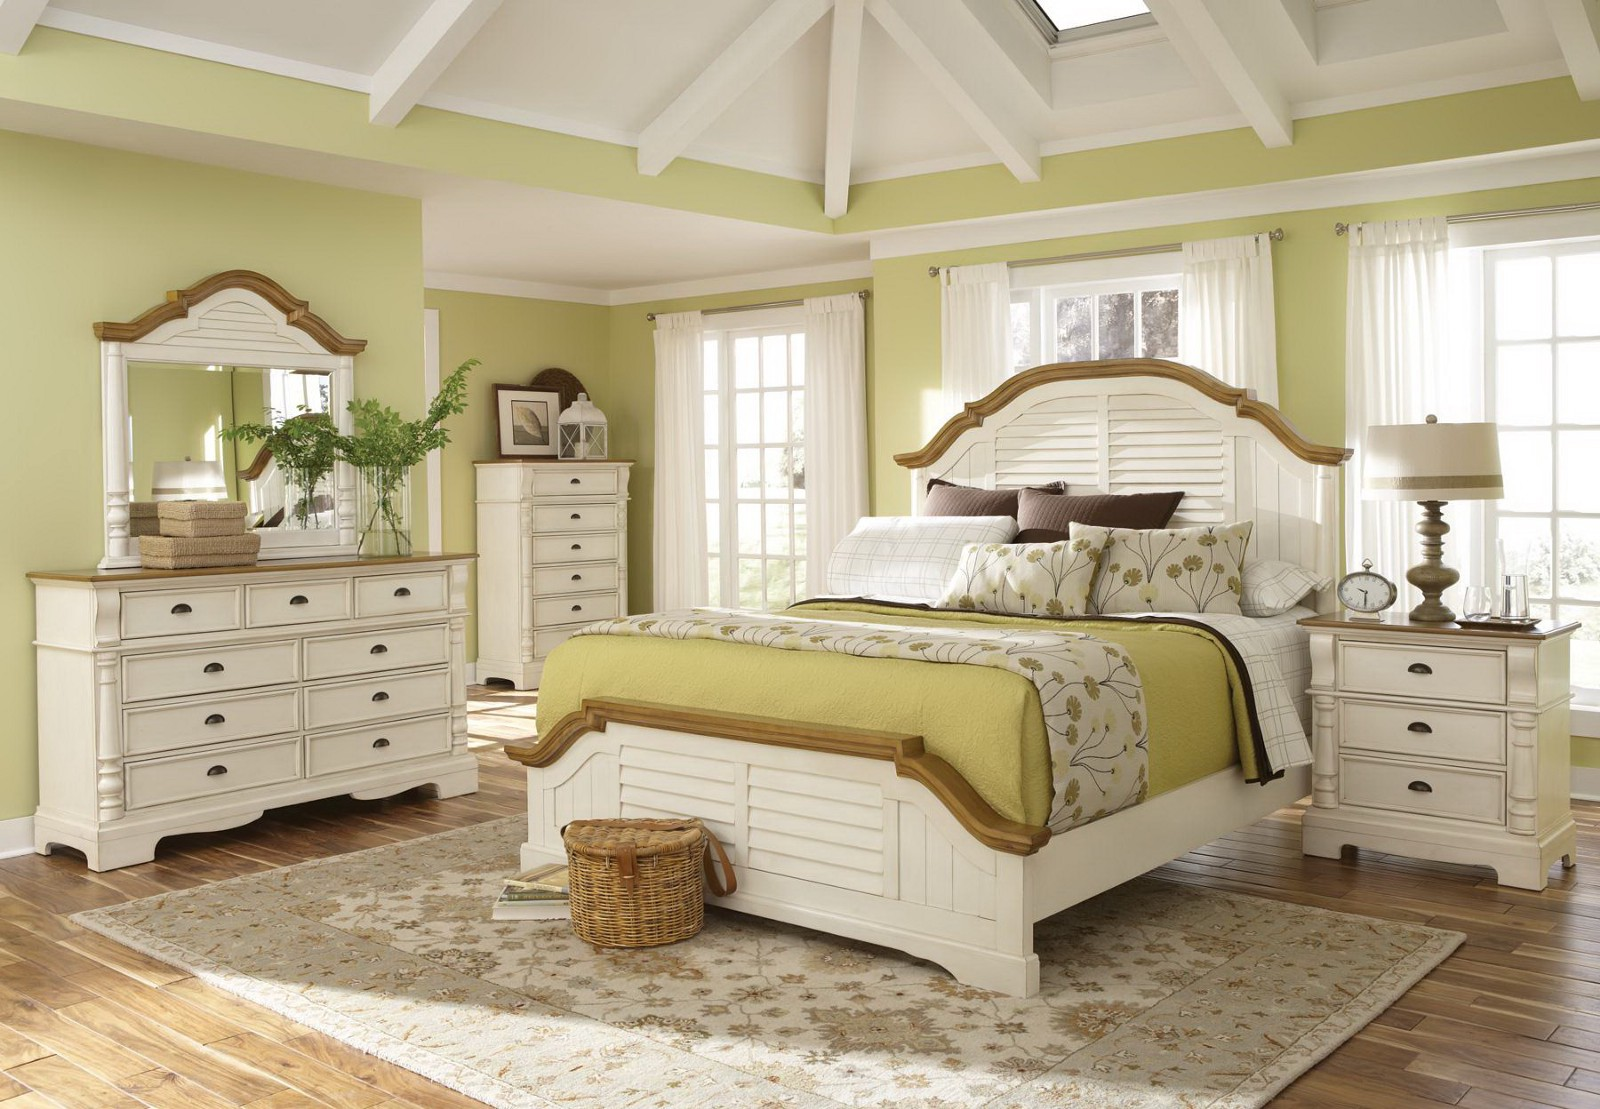 Pros and cons of a white bedroom dior furniture nyc medium - White country style bedroom furniture ...